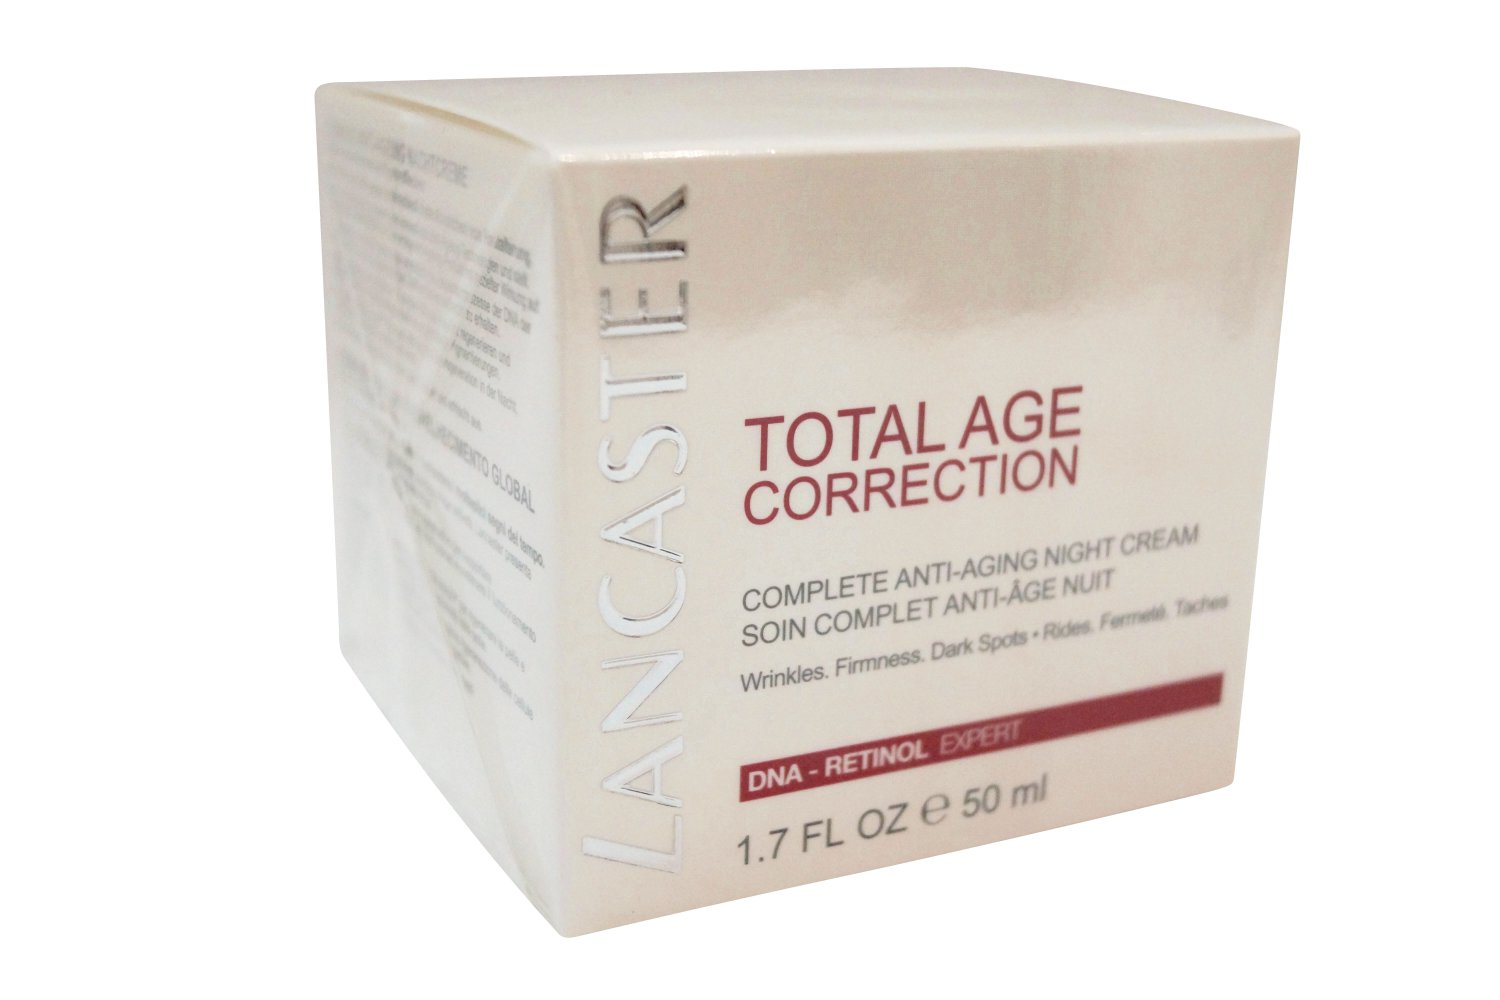 Lancaster Total Age Correction Complete Anti-Aging Night Cream, 50 ml 1.7 oz.